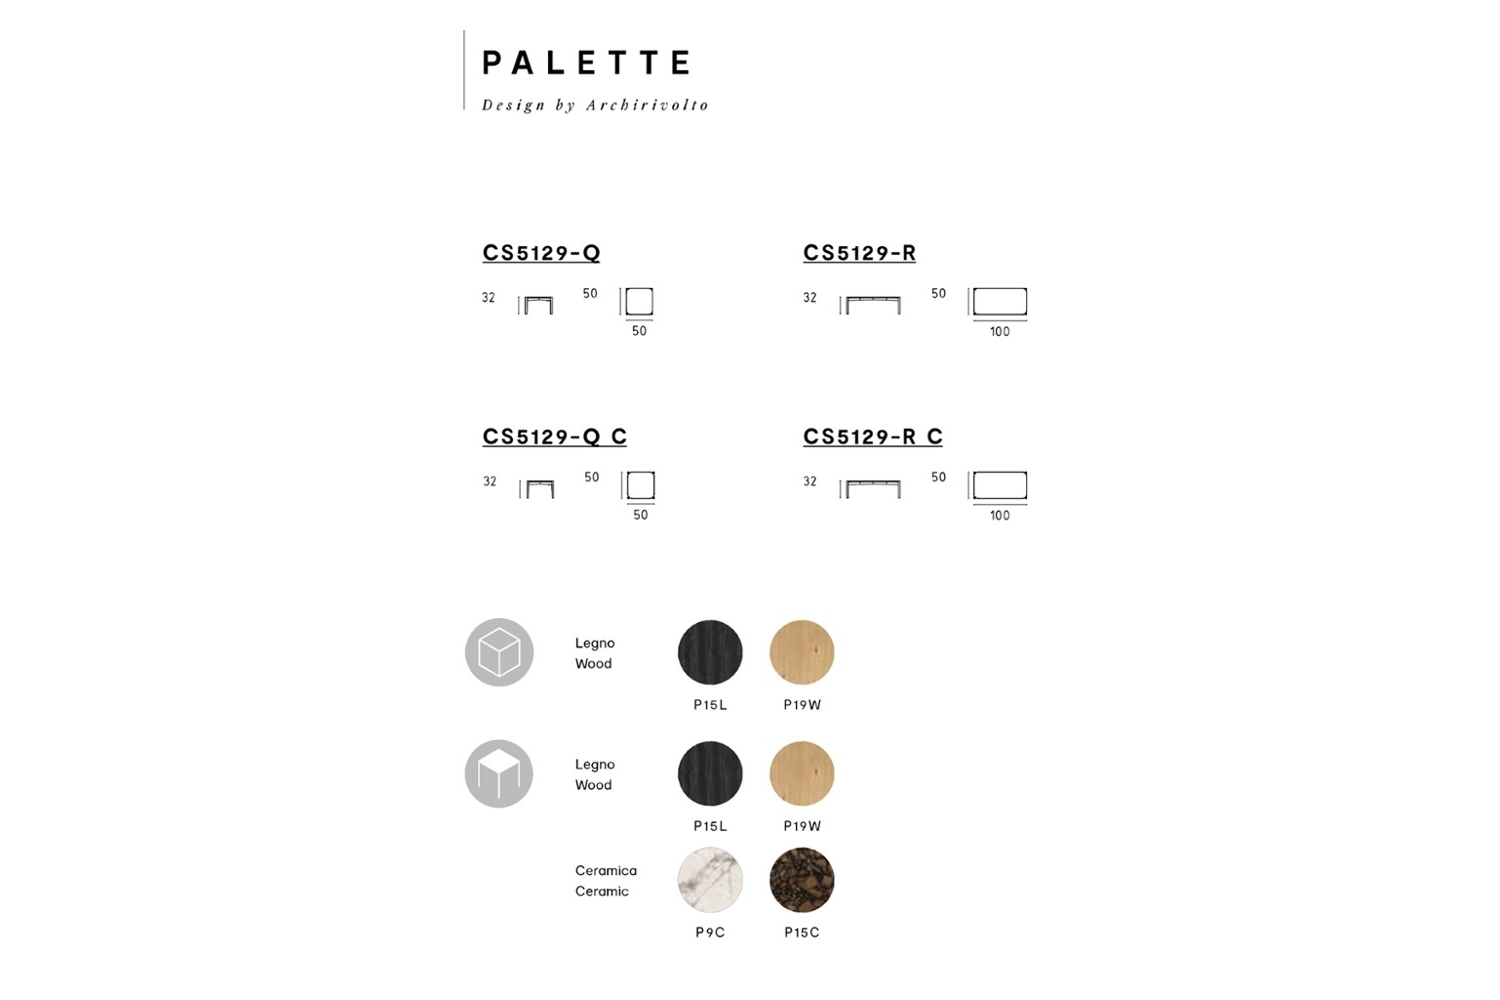 Palette%20spec%20sheet.jpg Palette coffee table_ Made by Calligaris_ Italy_Ash wood frame_ Designed by Achirivolto_Ash wood top_Ceremic top option_Nordic style_Minimilist design Palette%20spec%20sheet.jpg